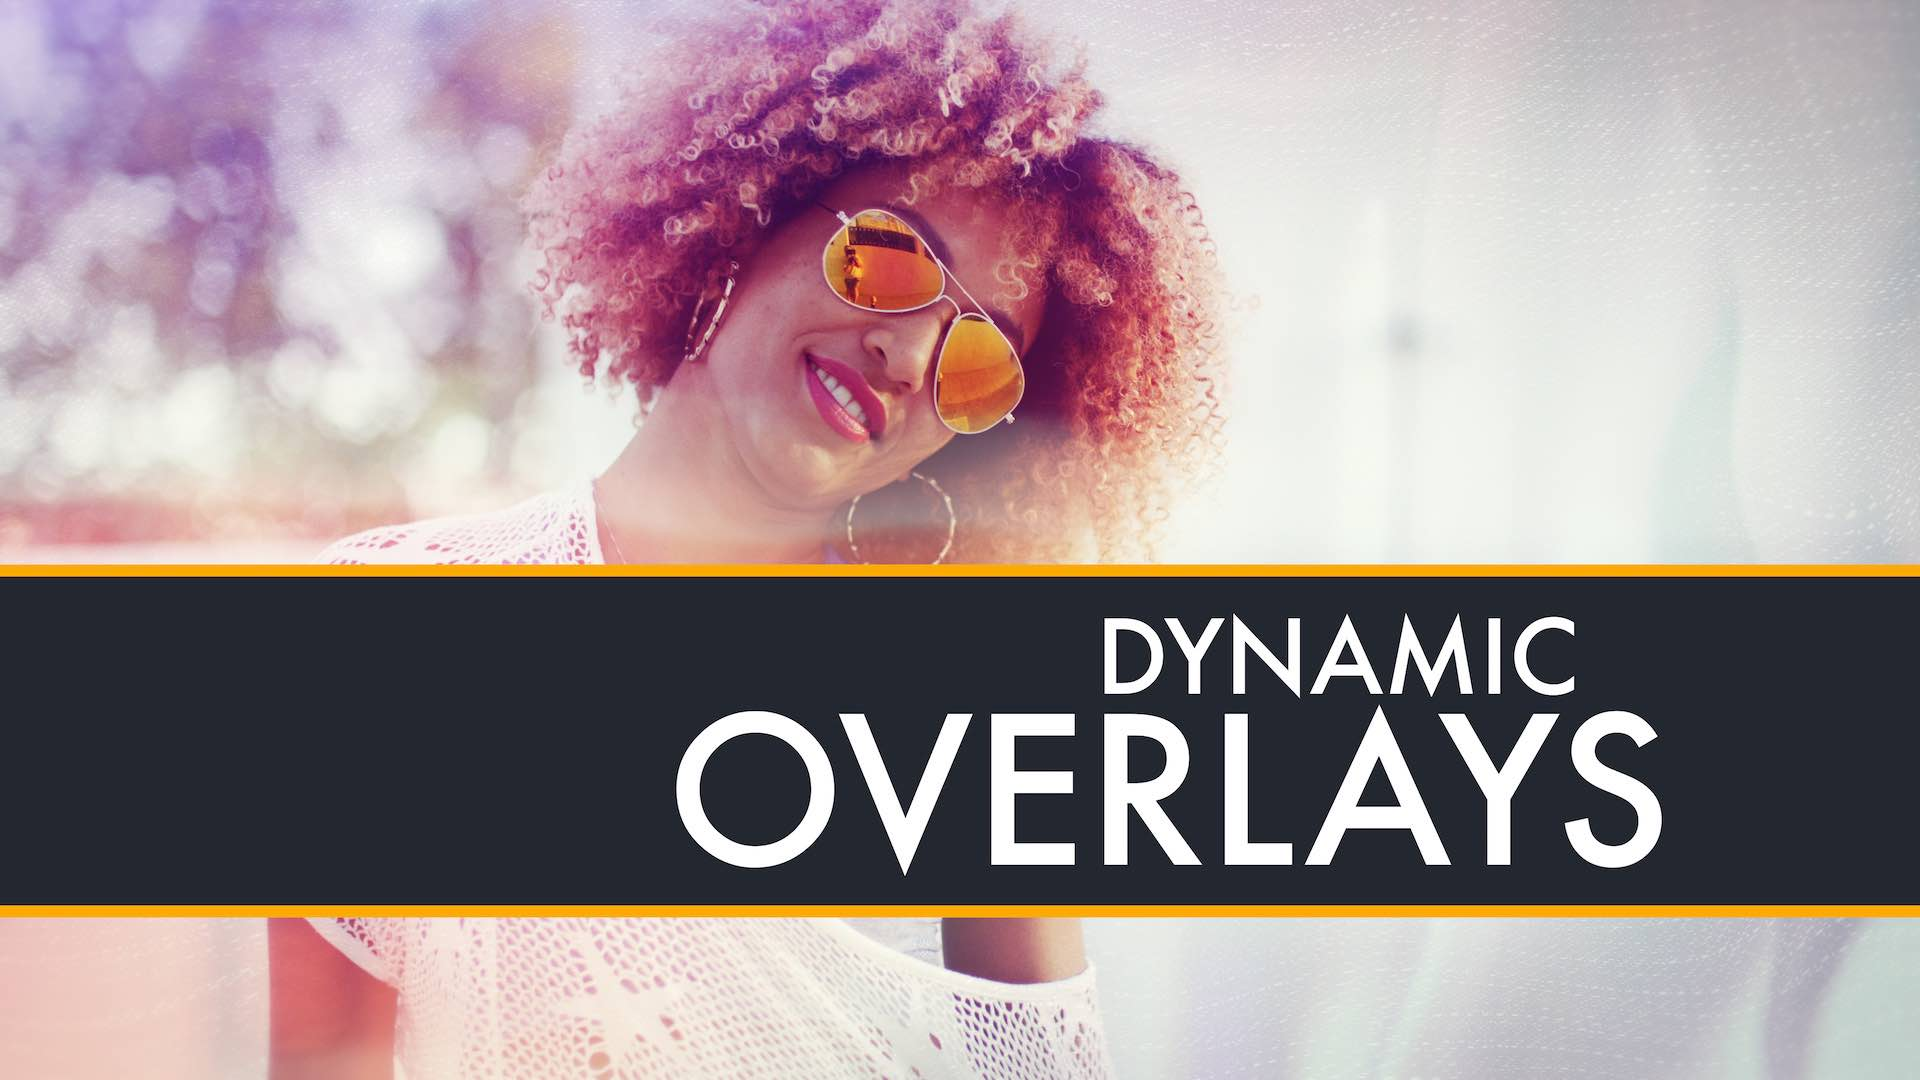 dynamic overlays